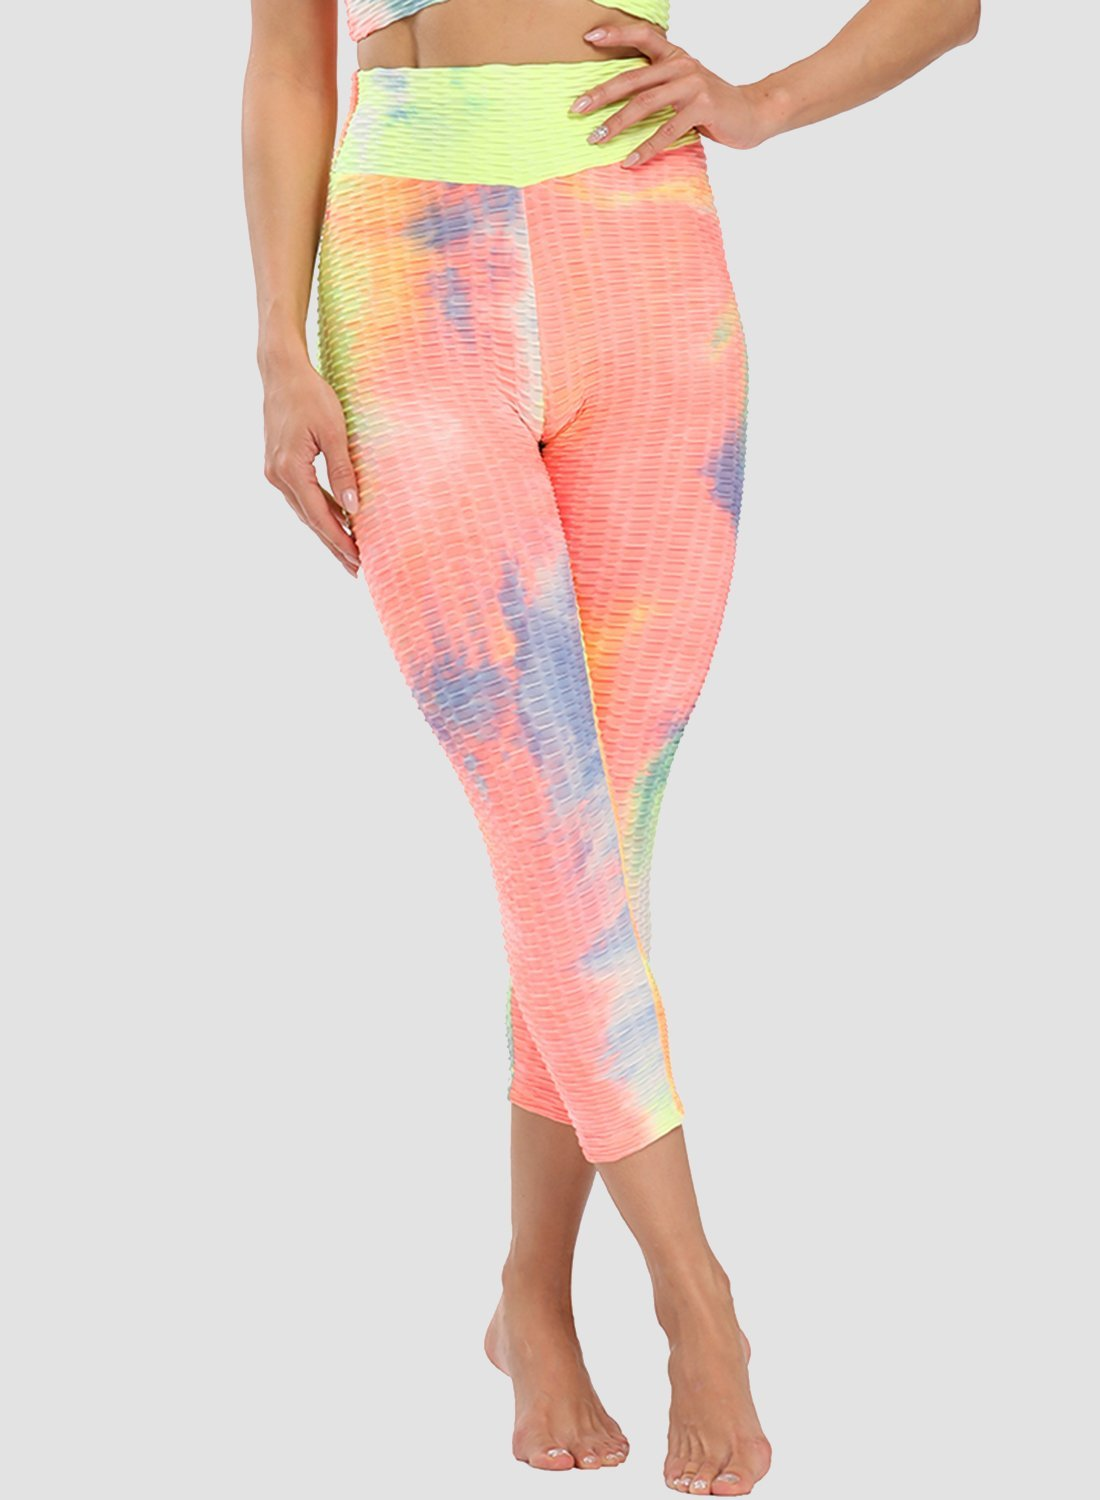 Super Stretchy Textured Tie-dyed Ruched Capris Leggings